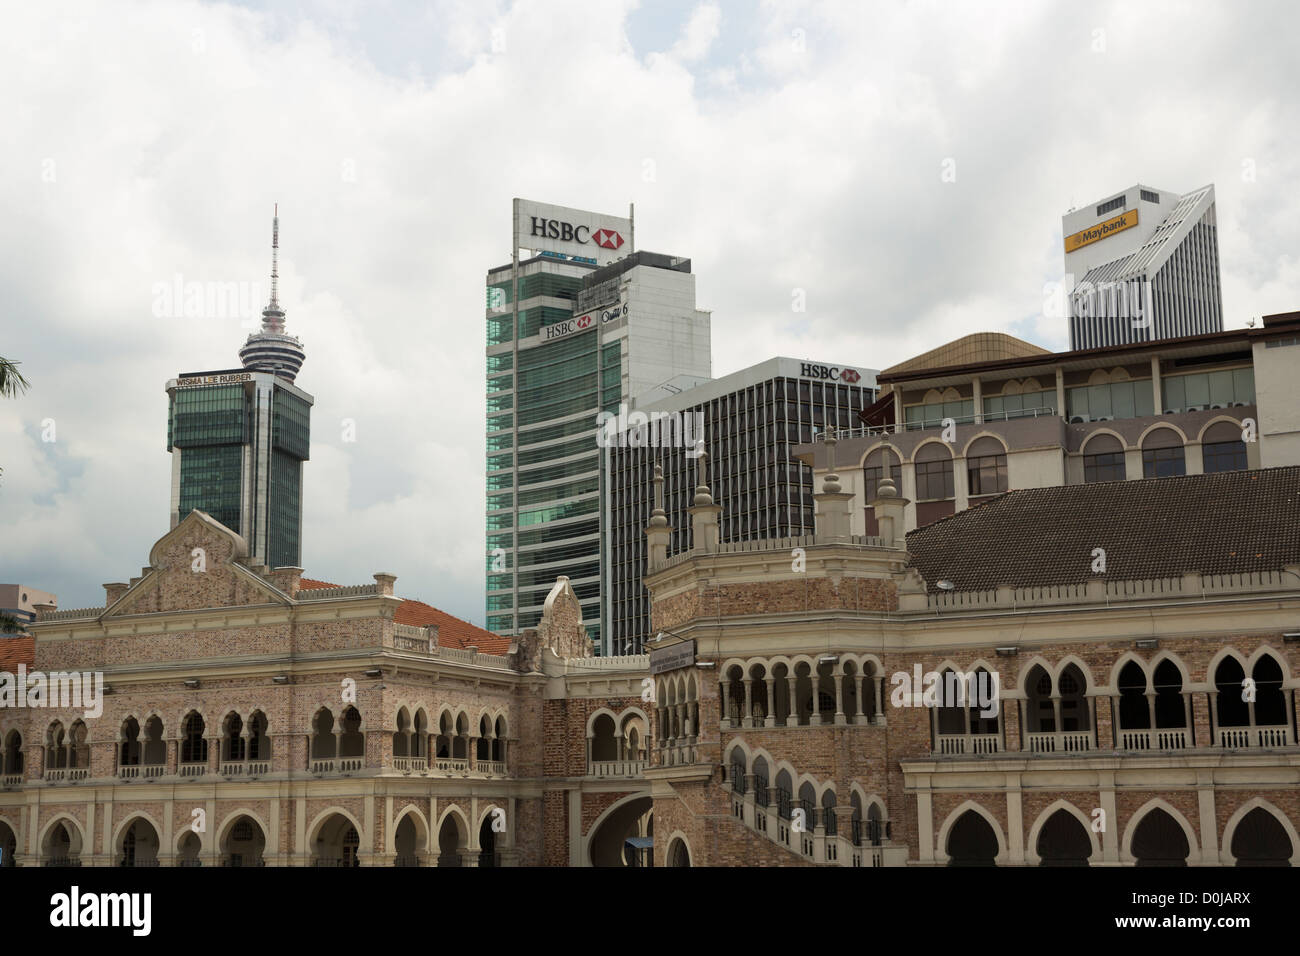 A view of central Kuala Lumpur with Sultan Abdul Samad building and HSBC and Maybank banks building Stock Photo